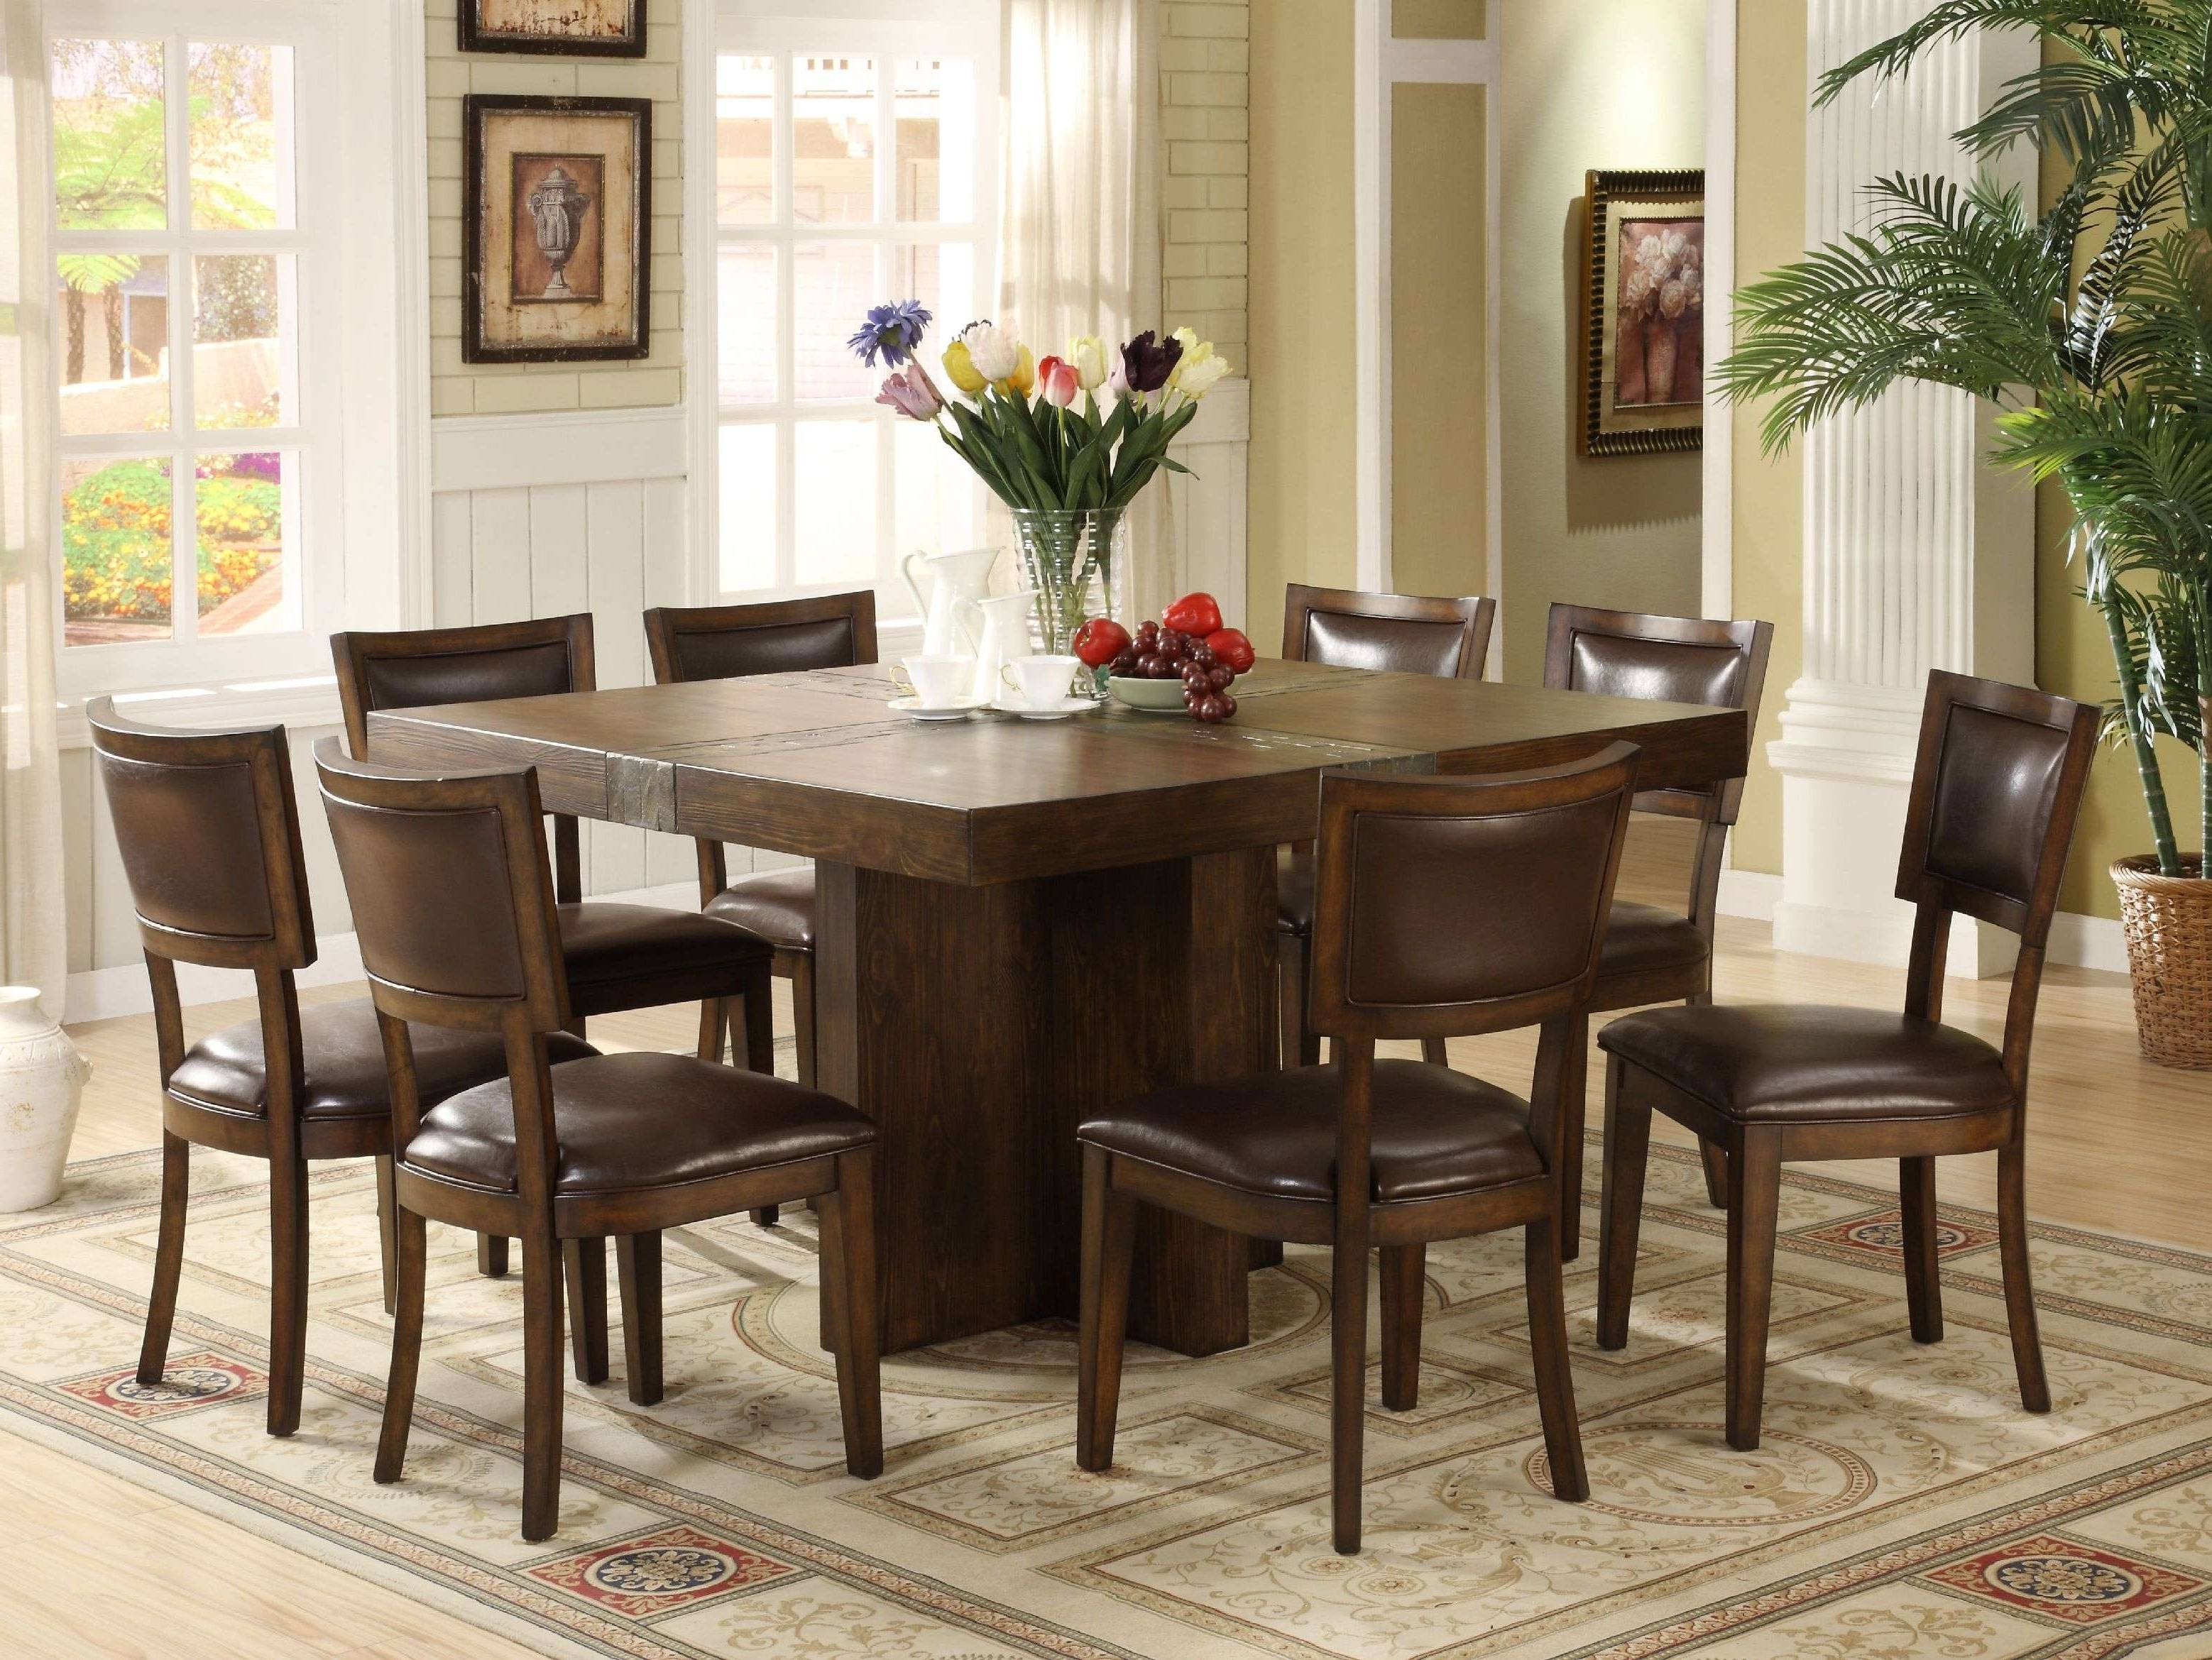 Dining Tables With 8 Chairs Regarding Well Known Solid Oak Dining Room Table And 8 Chairs New Ashley Counter Height (Gallery 20 of 25)